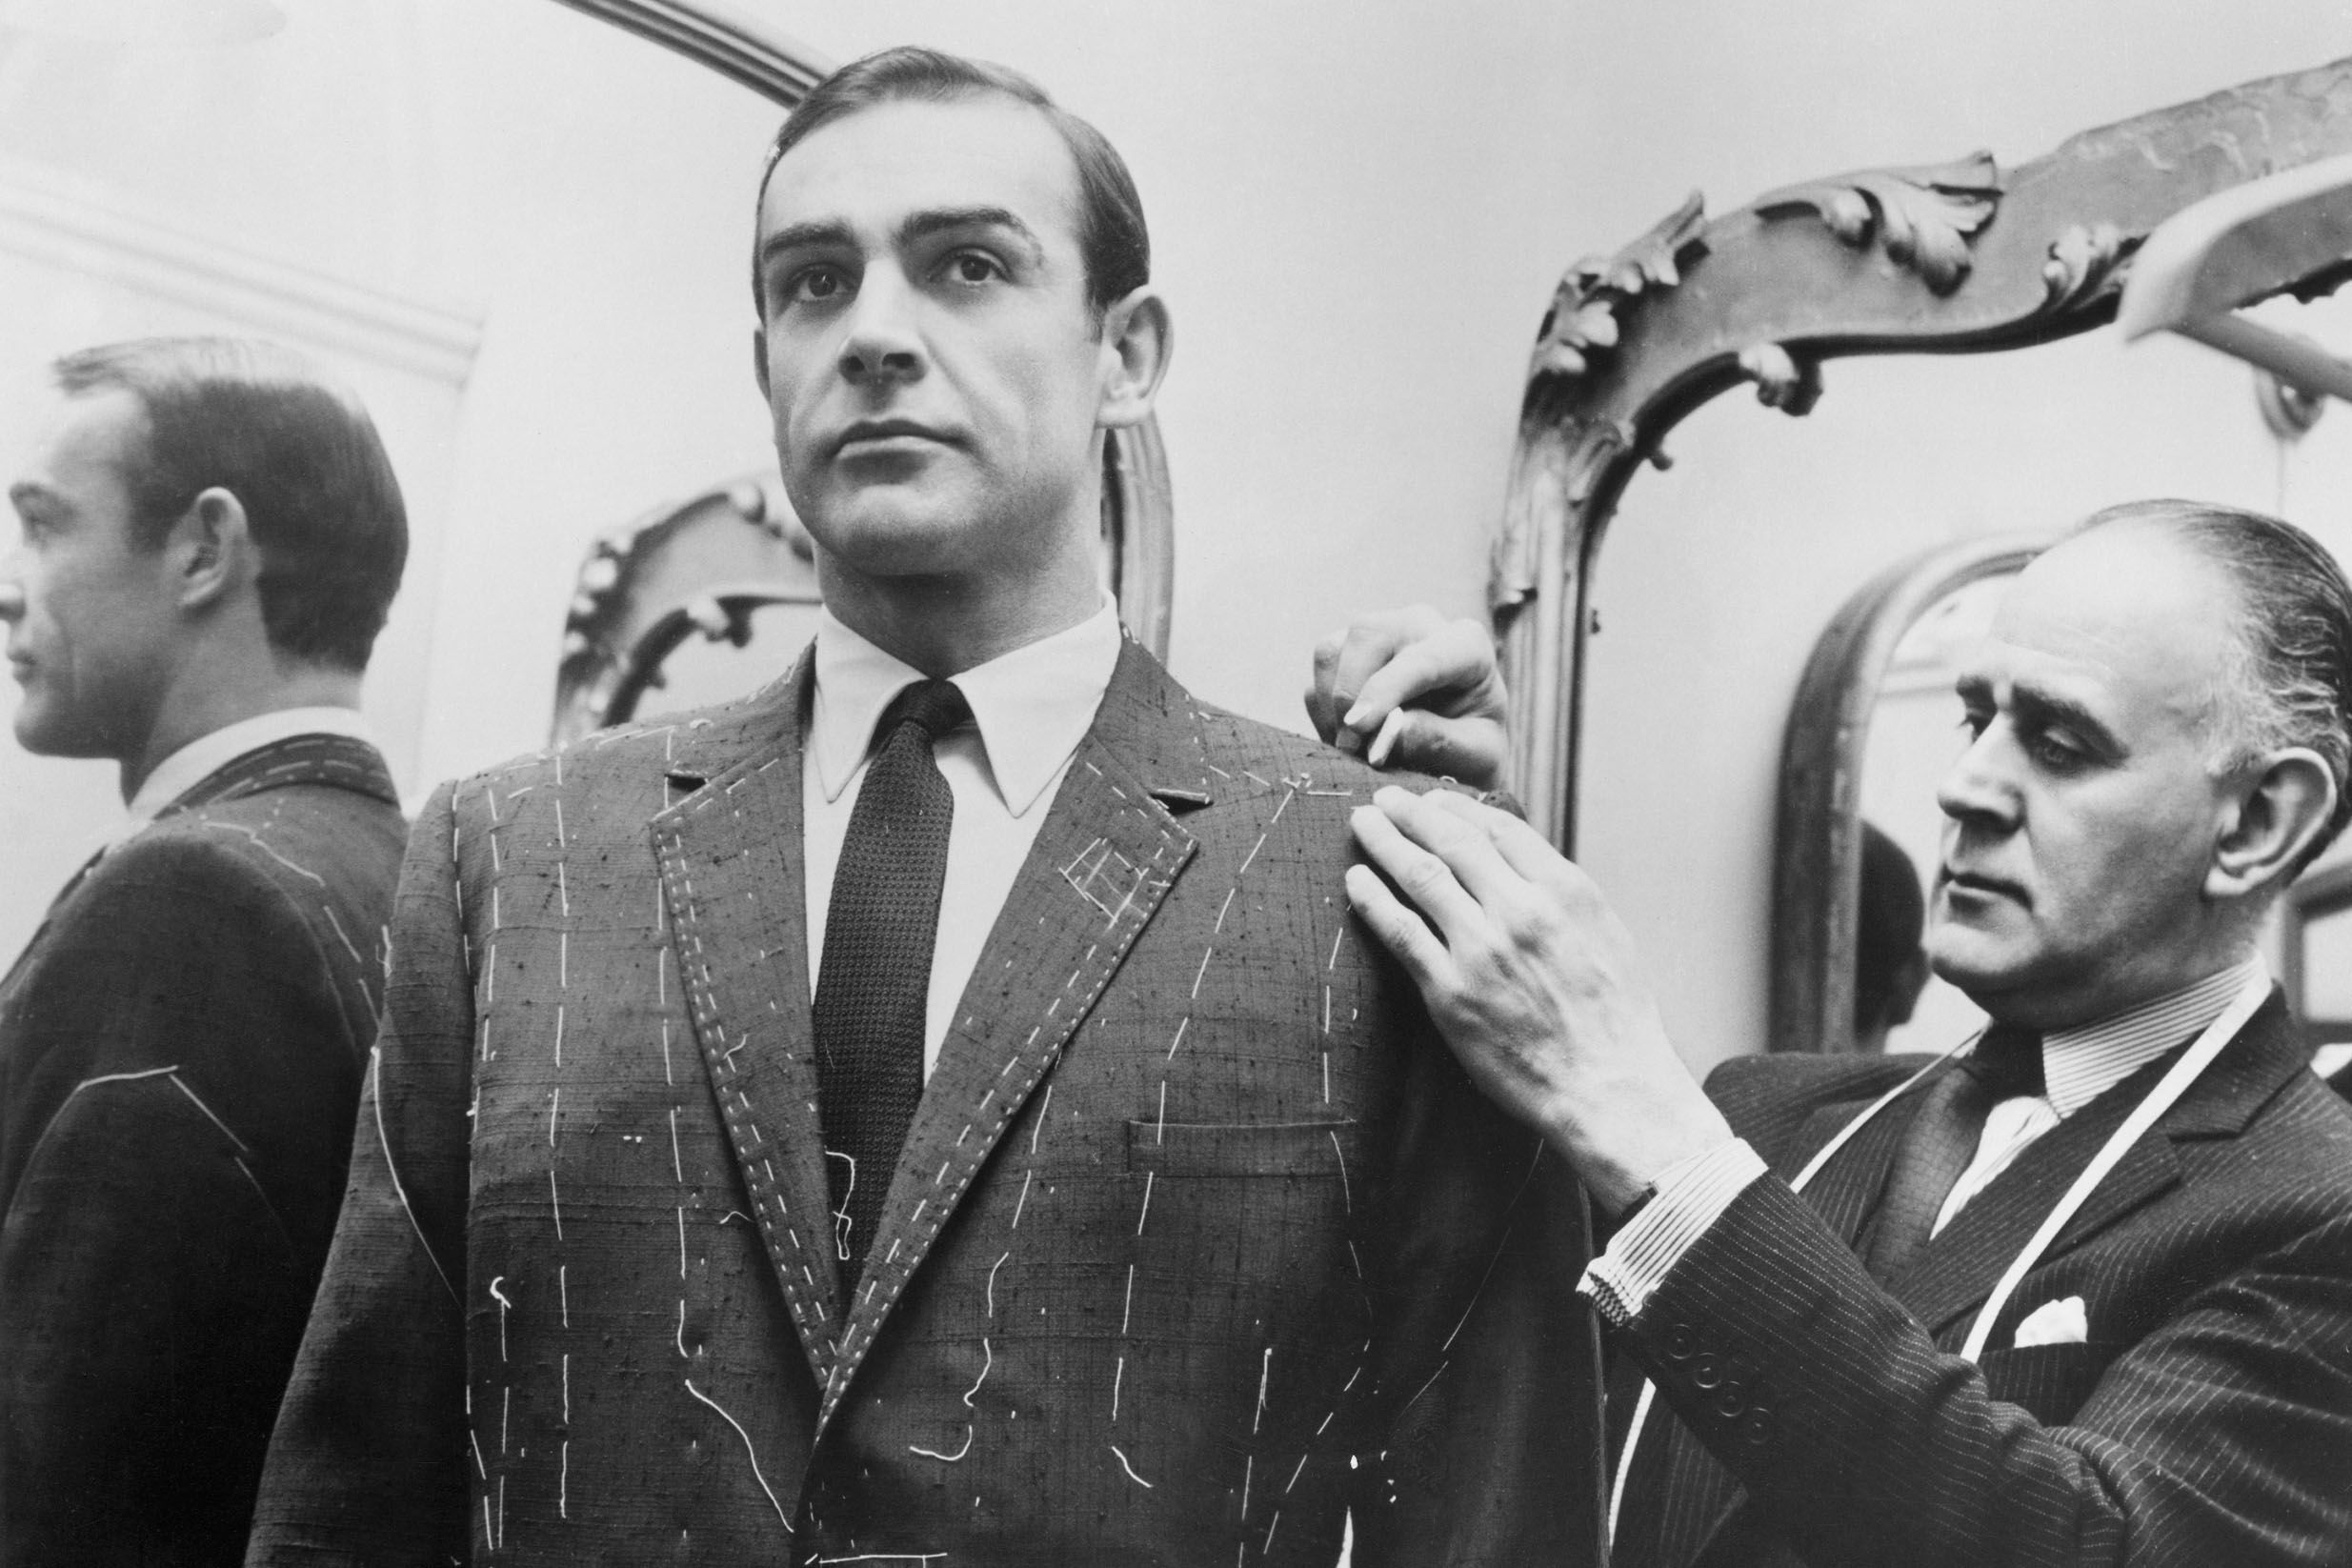 Tailor Anthony Sinclair fitting Sean Connery for one of the suits he will wear in the film From Russia With Love in Mayfair, London